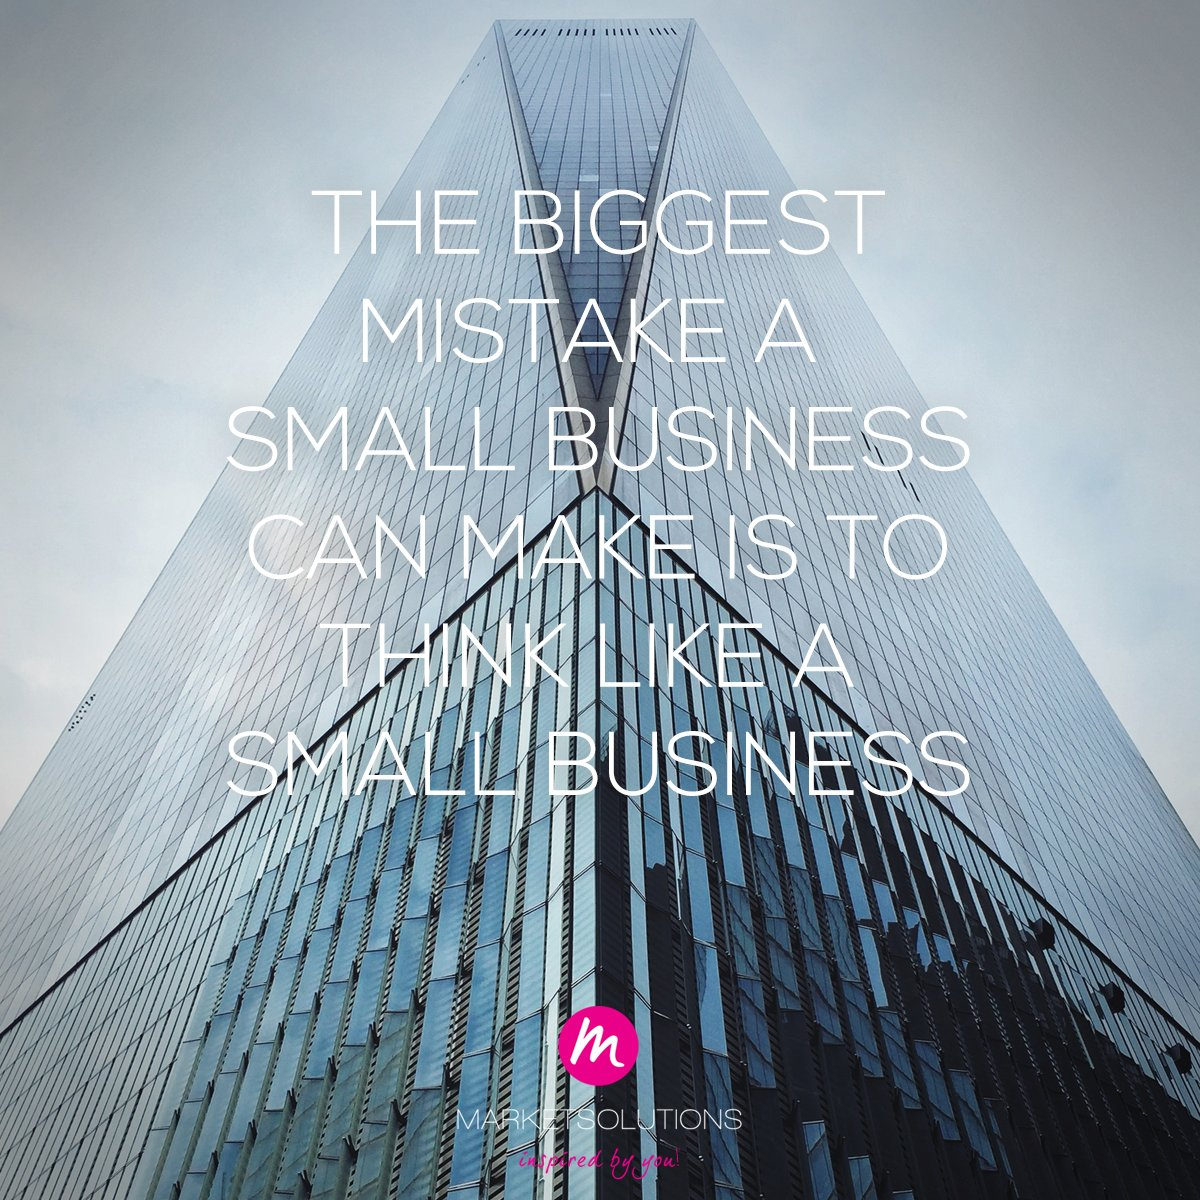 The biggest mistake a small business can make is to think like a small business#ThinkBigger #Mindset #GrowWithTheFlow #zzp #professionals #MKB #entrepreneurs #creators #goalgetters #PositiveVibes #Think #Big #Grow #Business #manifestation #Shift #Realitypic.twitter.com/3t2tFi7HsL